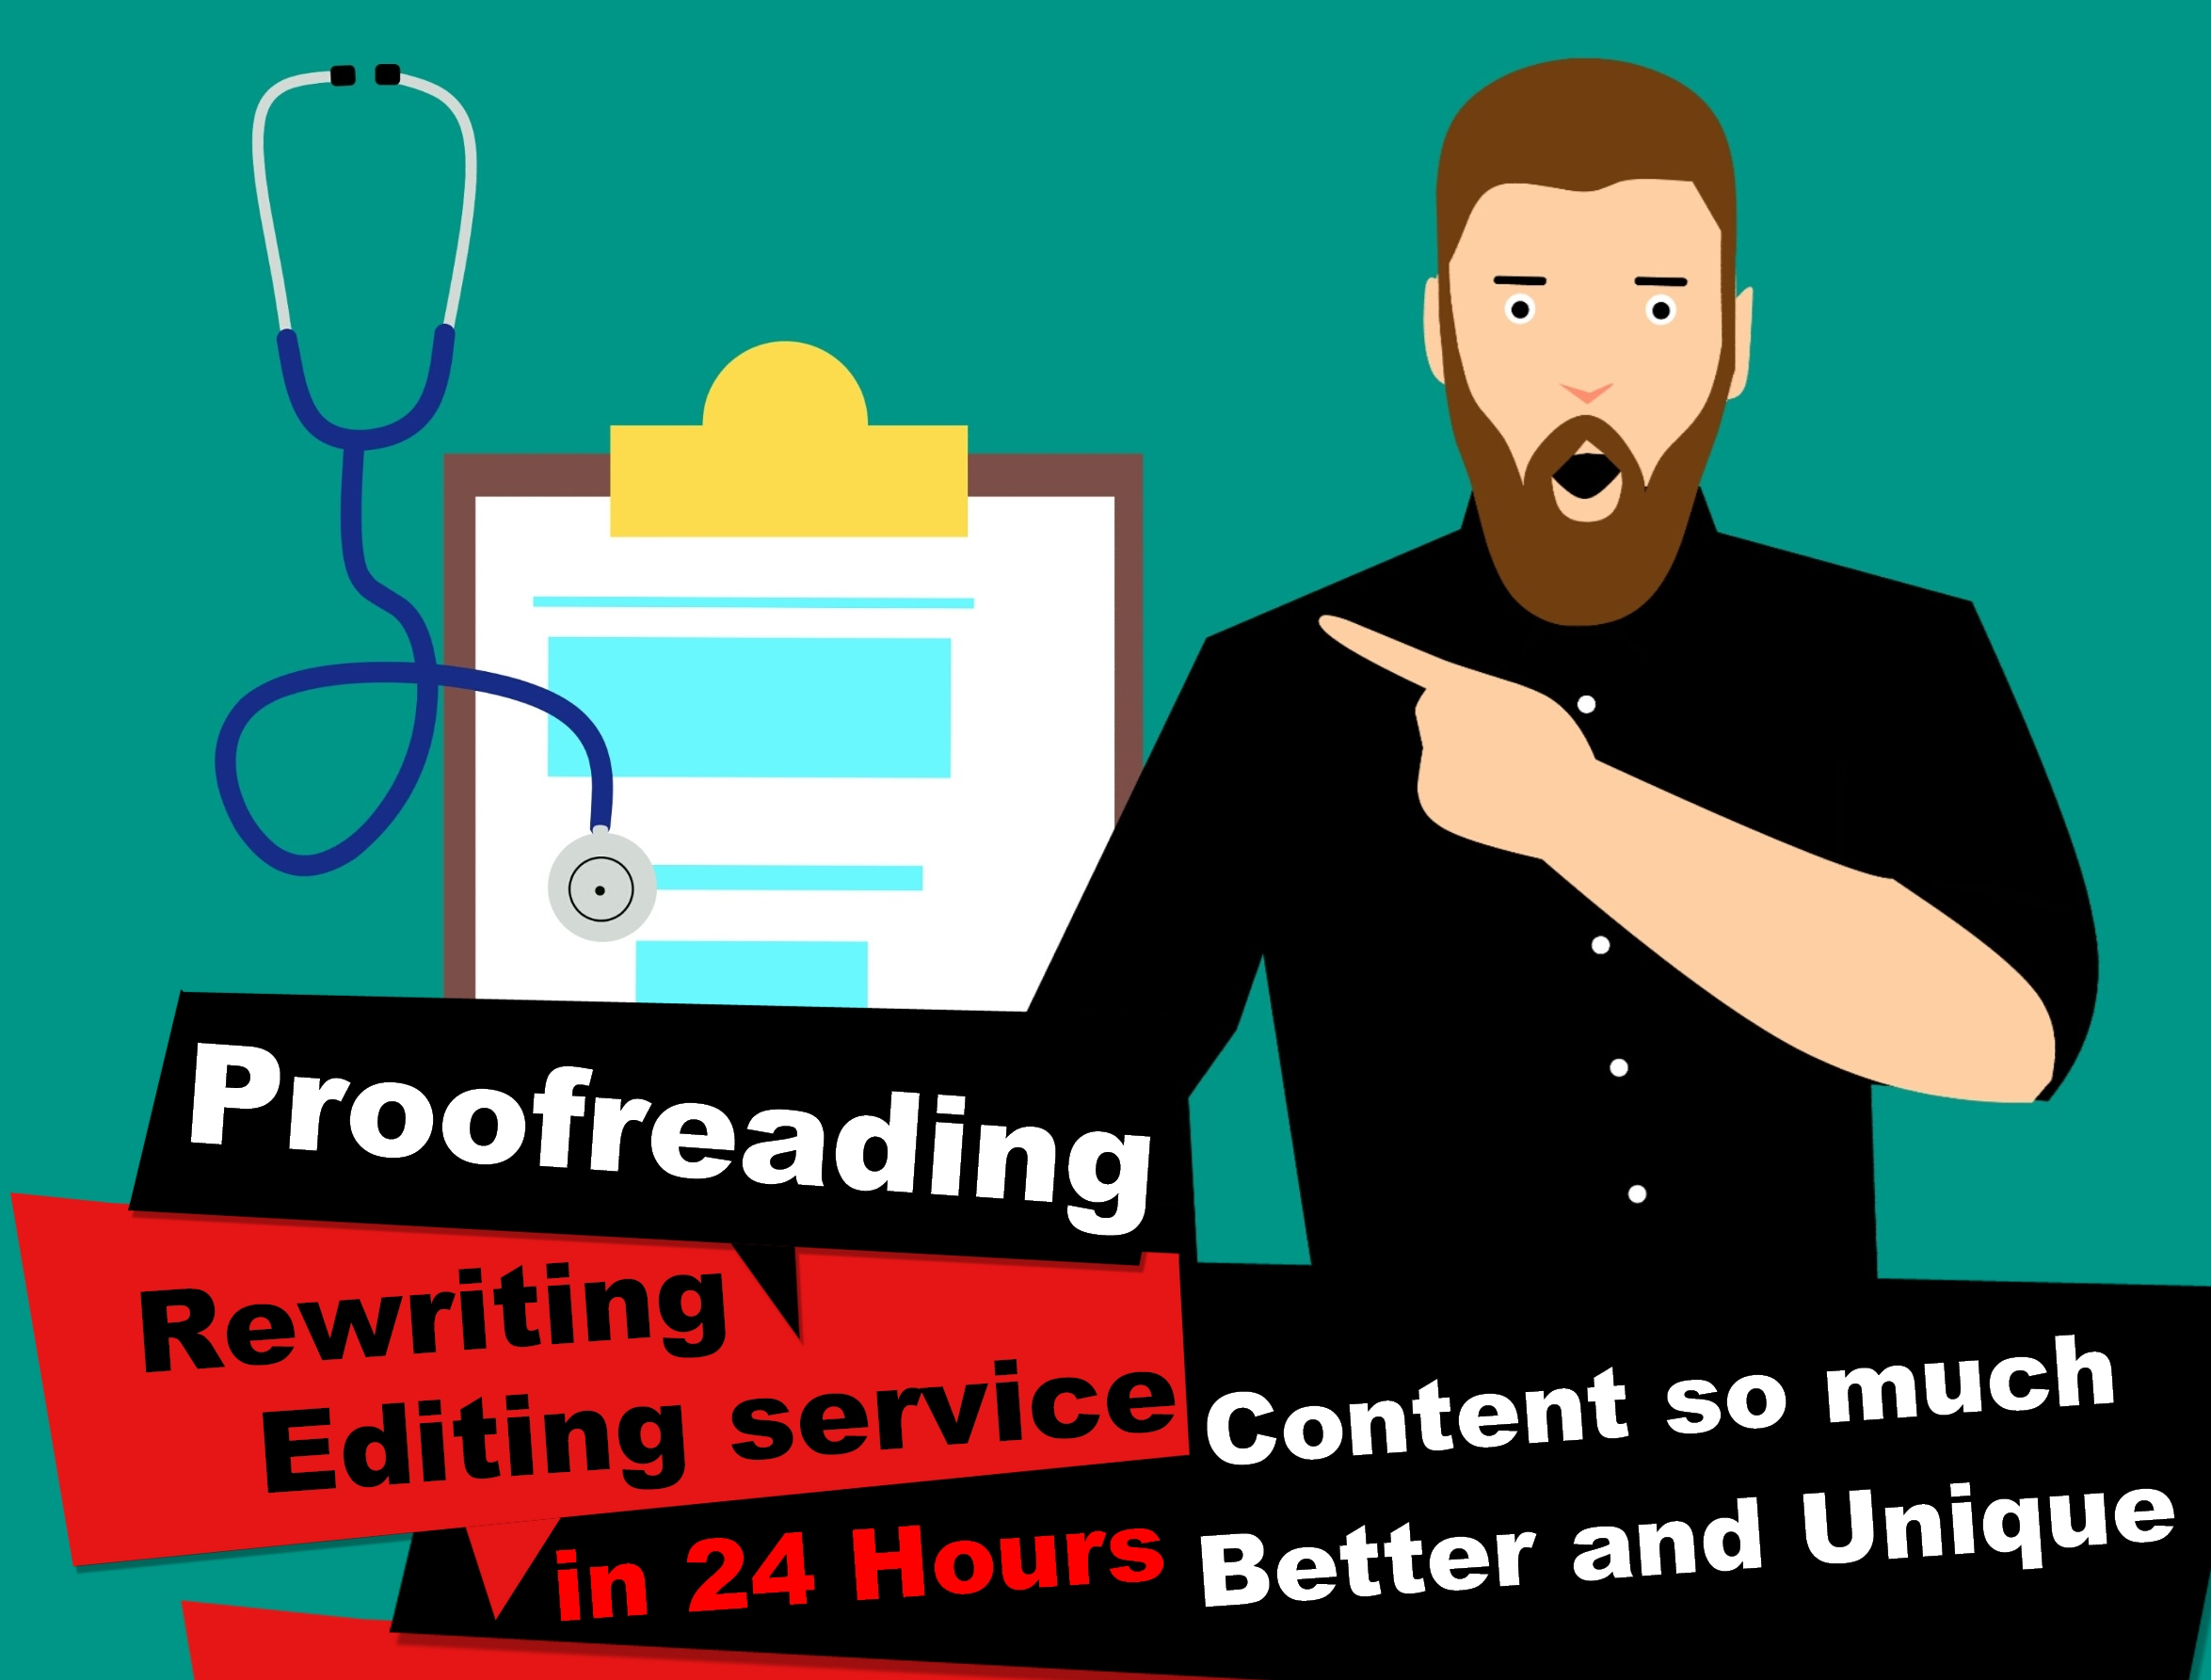 Proofreading / Rewriting / Editing service / Content so much Better and Unique